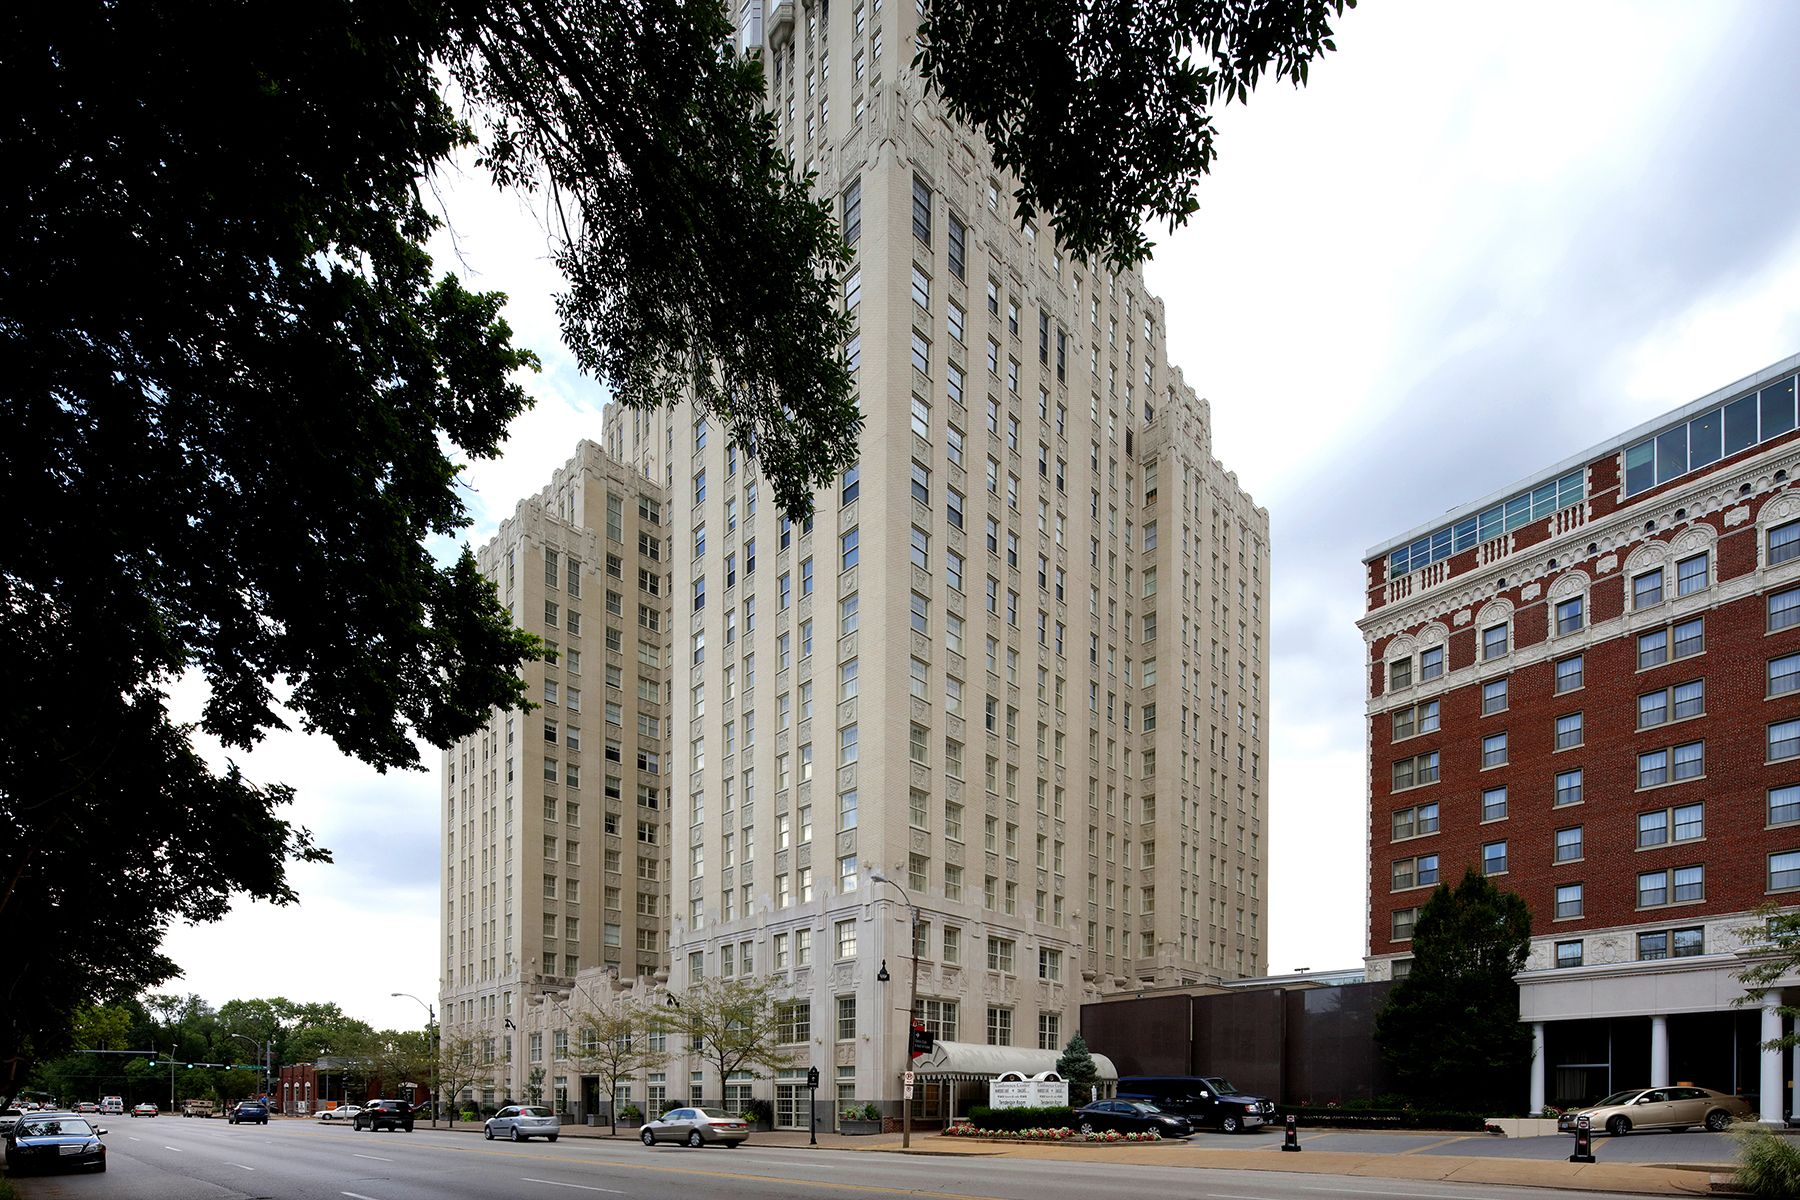 Condominiums for Sale at A Dream Come True at The Chase Park Plaza 232 North Kingshighway Boulevard #910 St. Louis, Missouri 63108 United States